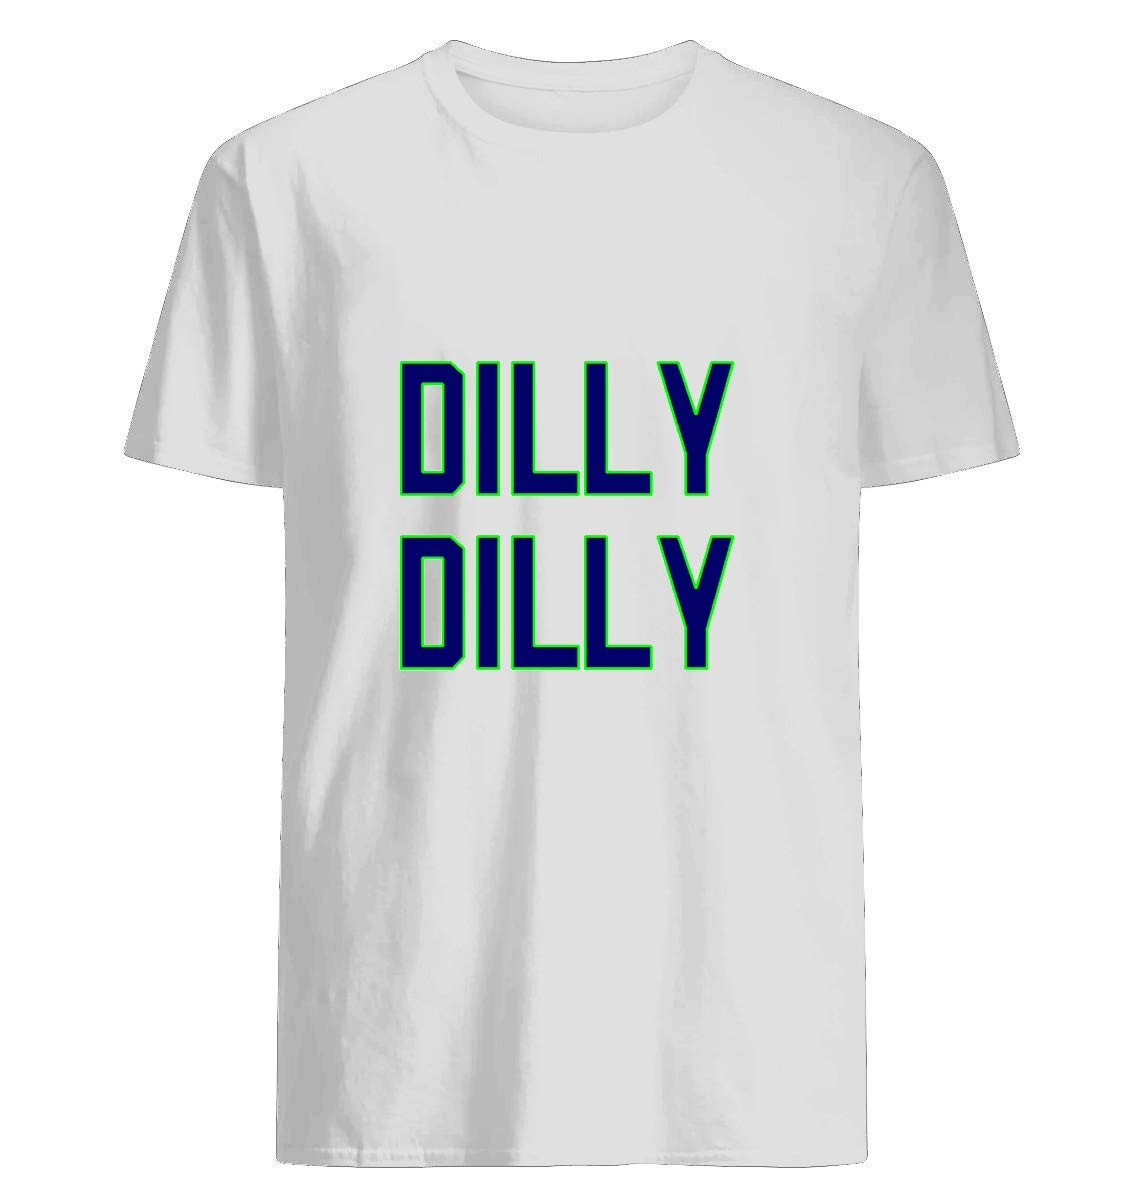 Dilly Dilly Seattle 27 Shirts